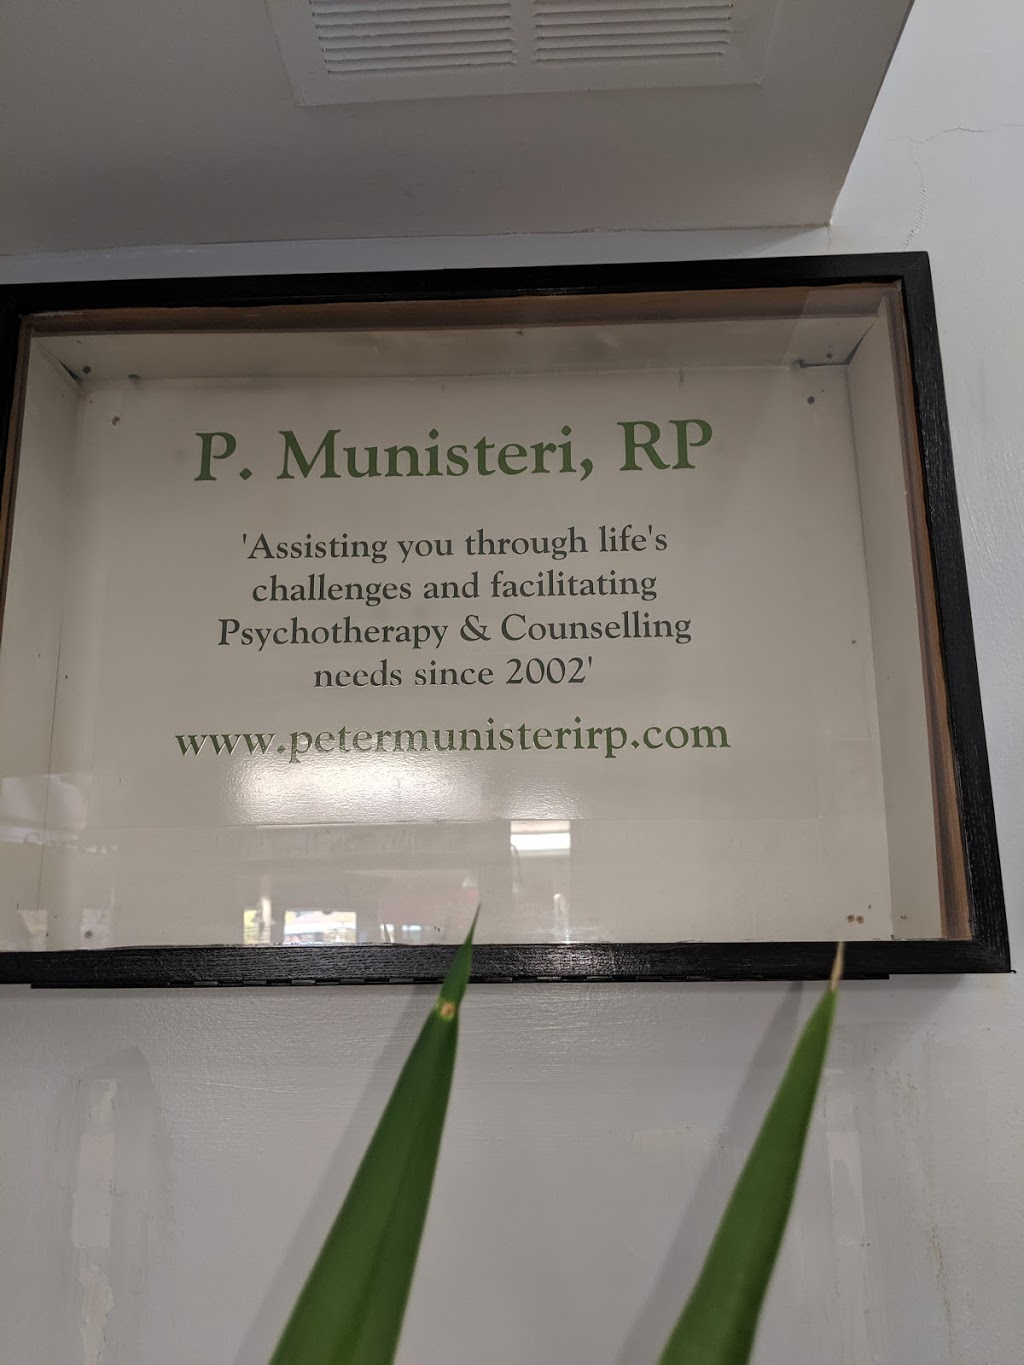 Peter Munisteri, RP Psychotherapy | health | 270 The Kingsway, Suite 1A South Offices Humbertown Centre, Toronto, ON M9A 3T7, Canada | 4166190083 OR +1 416-619-0083